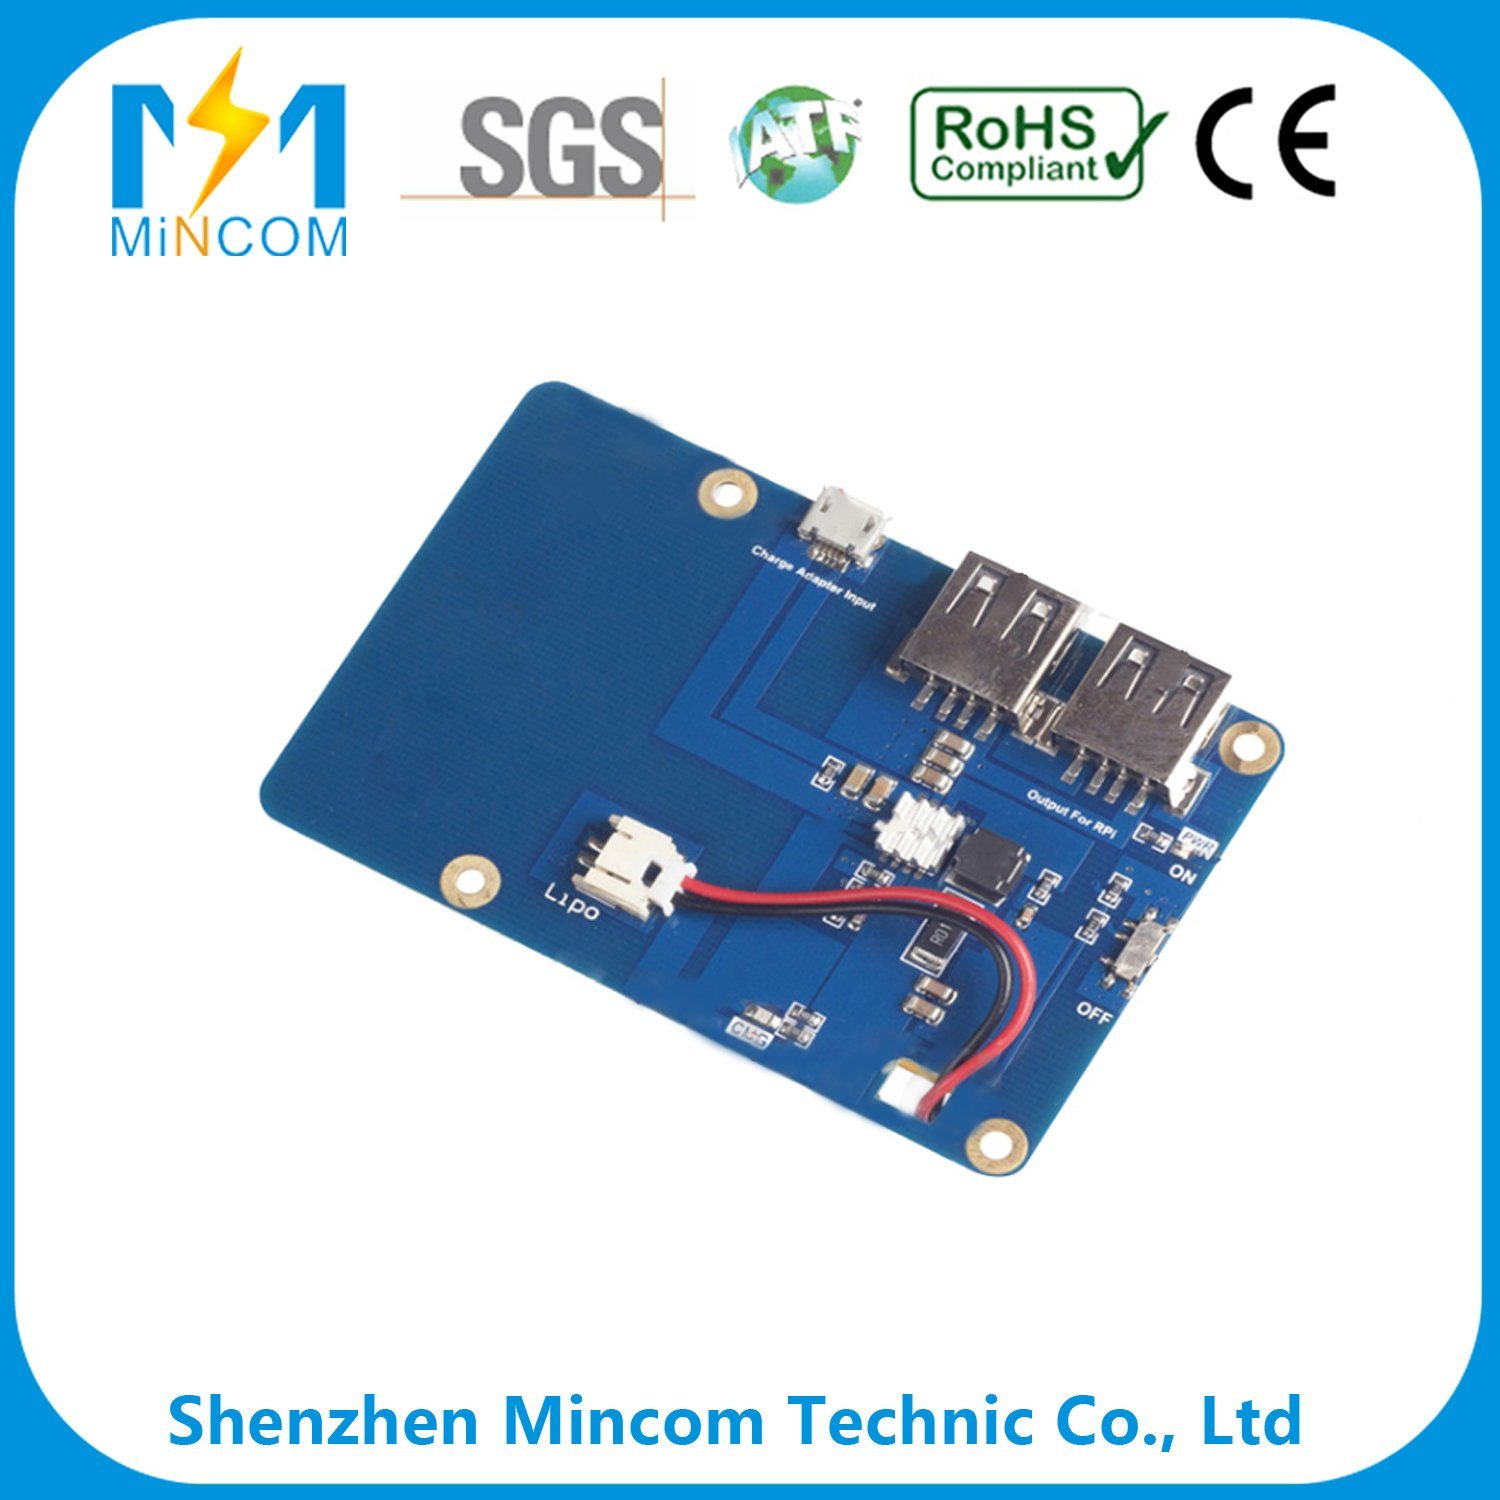 China Mobile Pcb Manufacturers Suppliers Made In To 16 Layers Circuit Board Custom Manufacturer